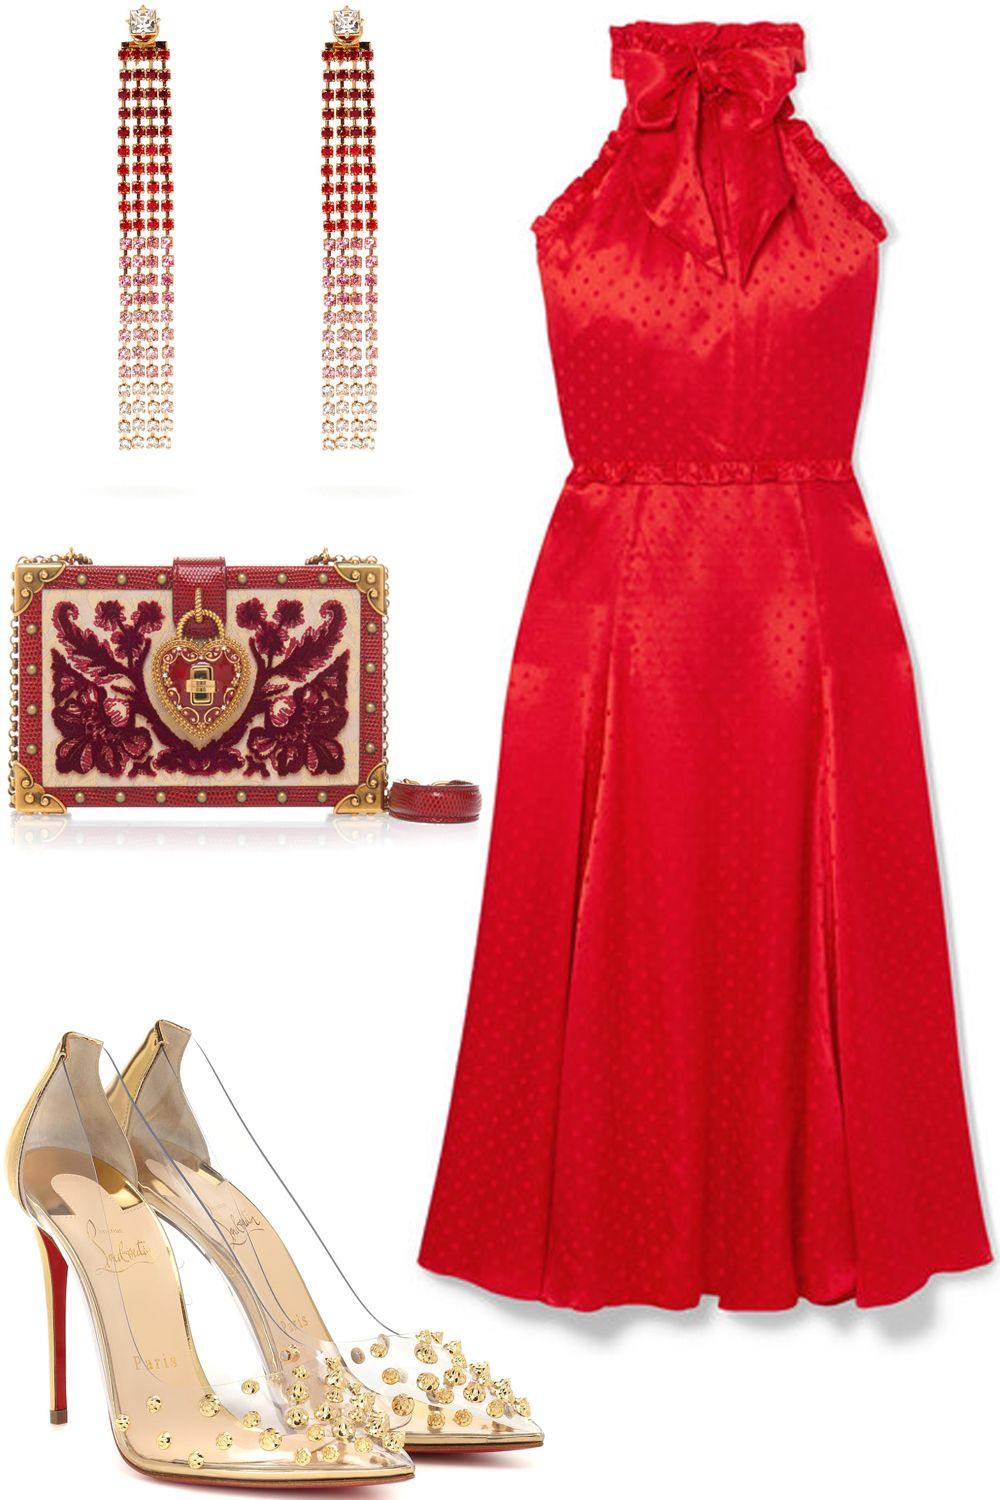 ca6468d9b51 Dresses to Wear To a Summer Wedding As a Guest - Wedding Guest Outfits